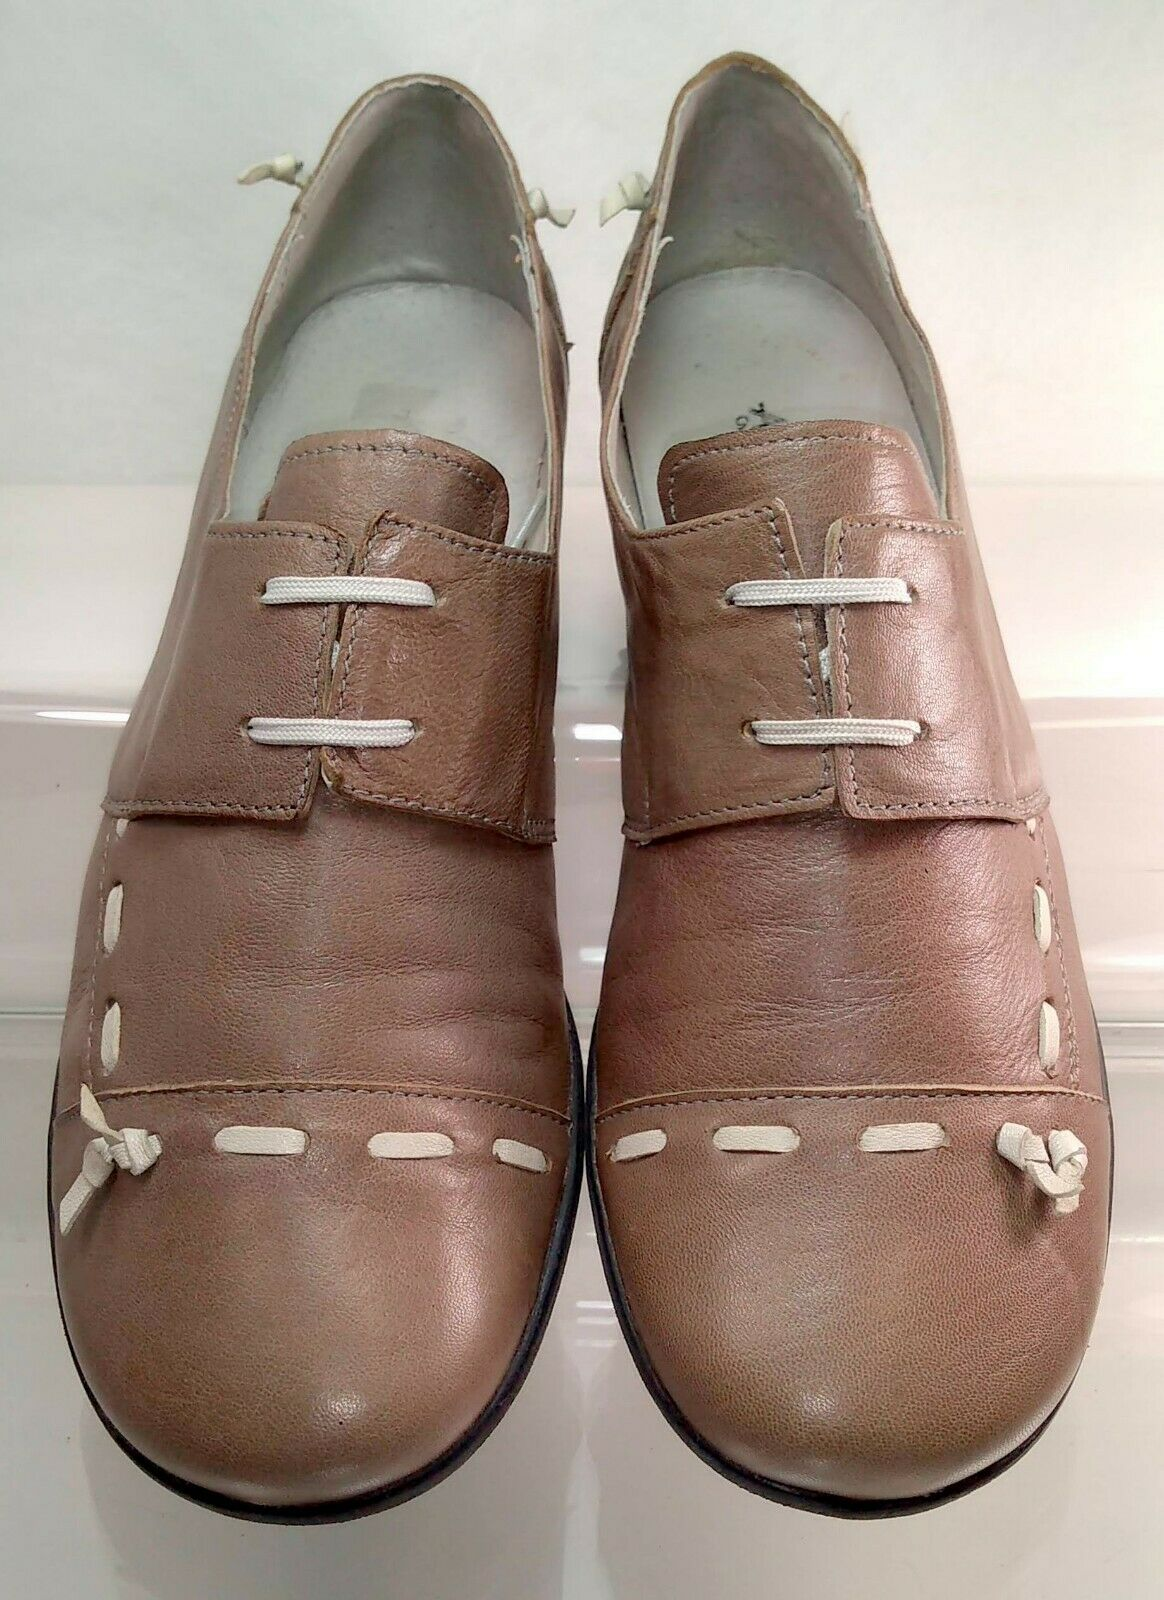 ARIMA Pour Elle Lace Up Stitch Taupe Leather Women US 9   40 Well Maintained